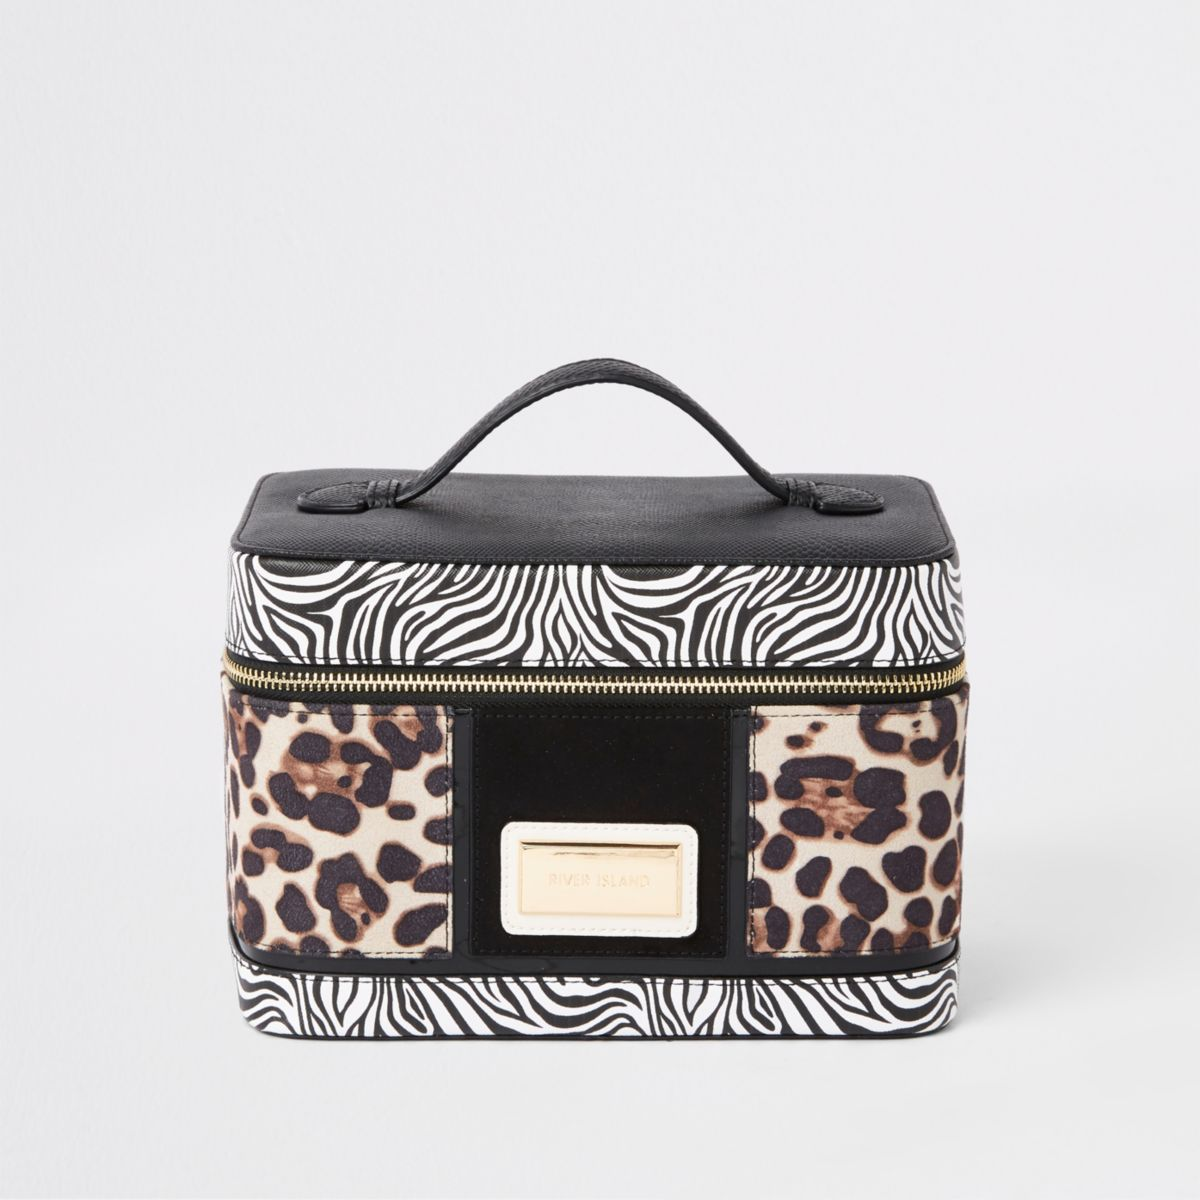 Black animal print vanity case